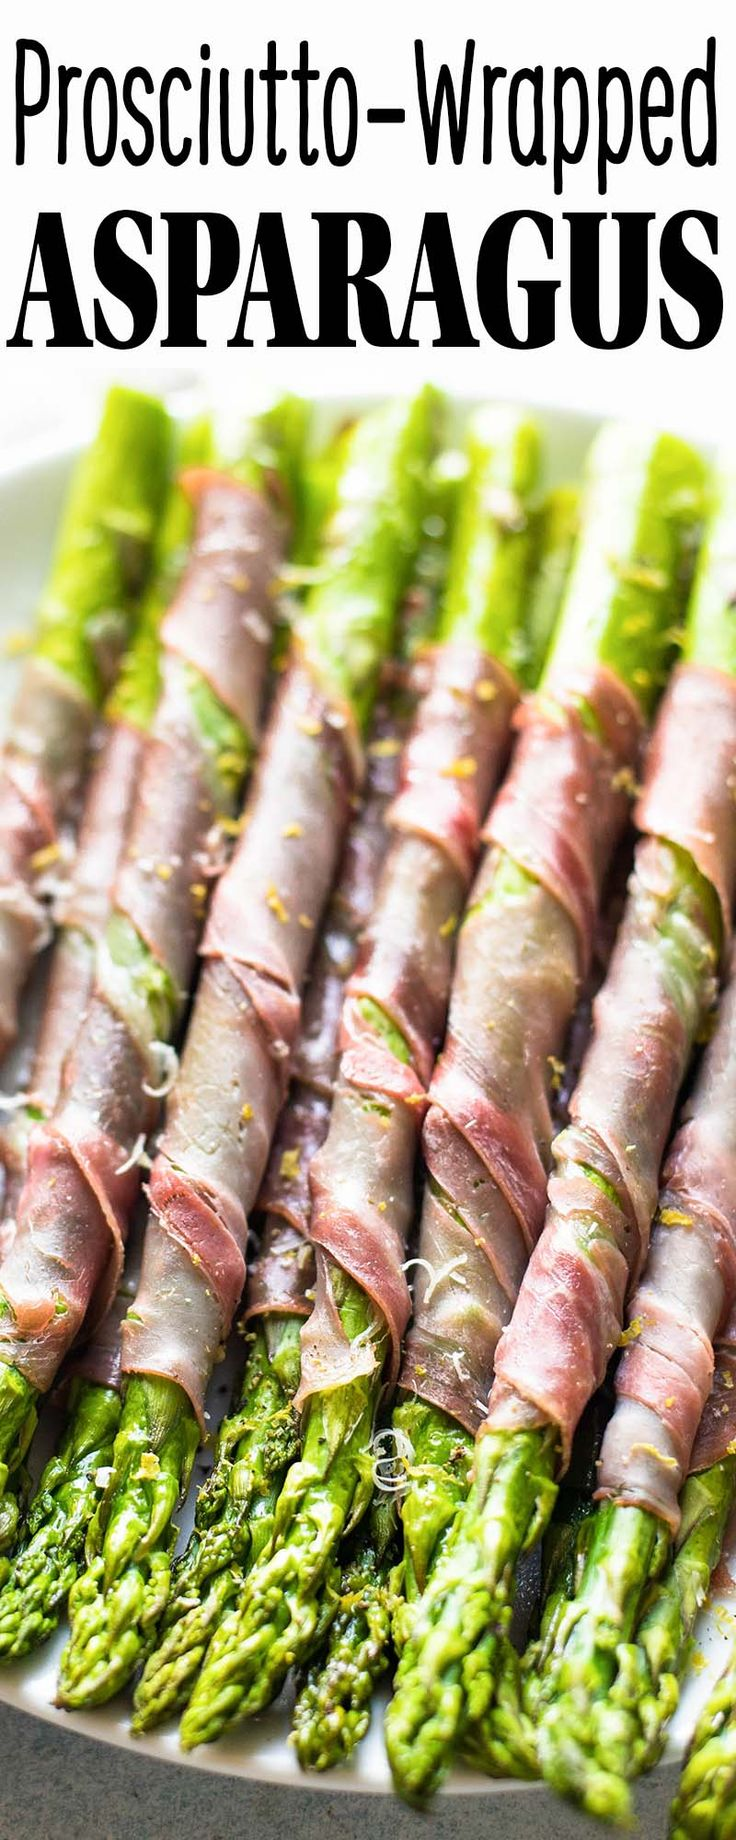 Prosciutto-wrapped asparagus! Such an EASY way to make oven-roasted asparagus feel fancy. Great for Easter, Mother's Day, or any special spring meal!